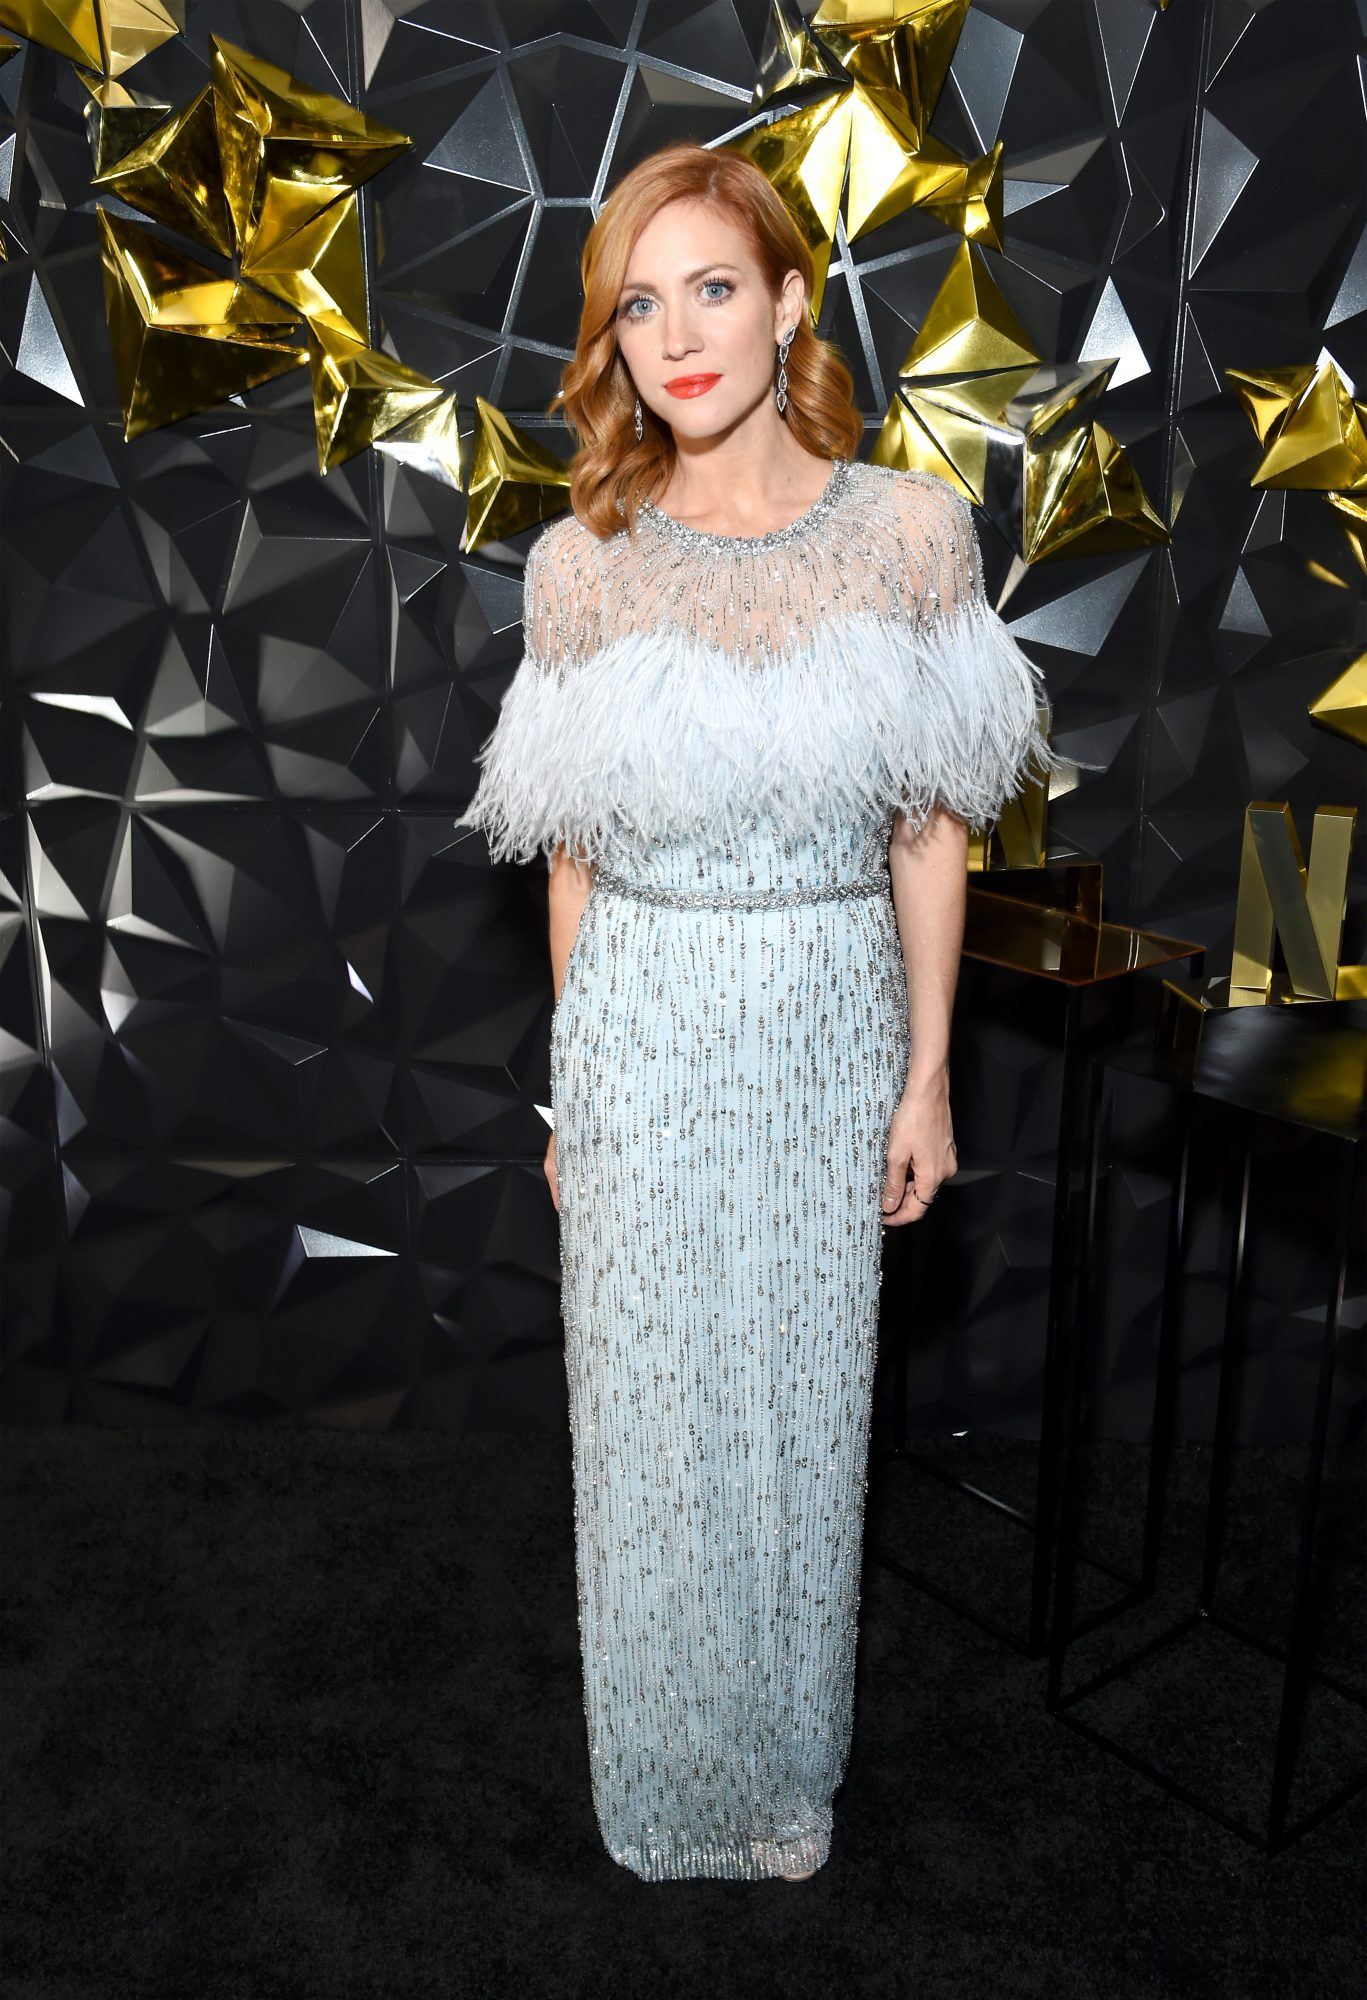 Emmys After Party- Brittany Snow